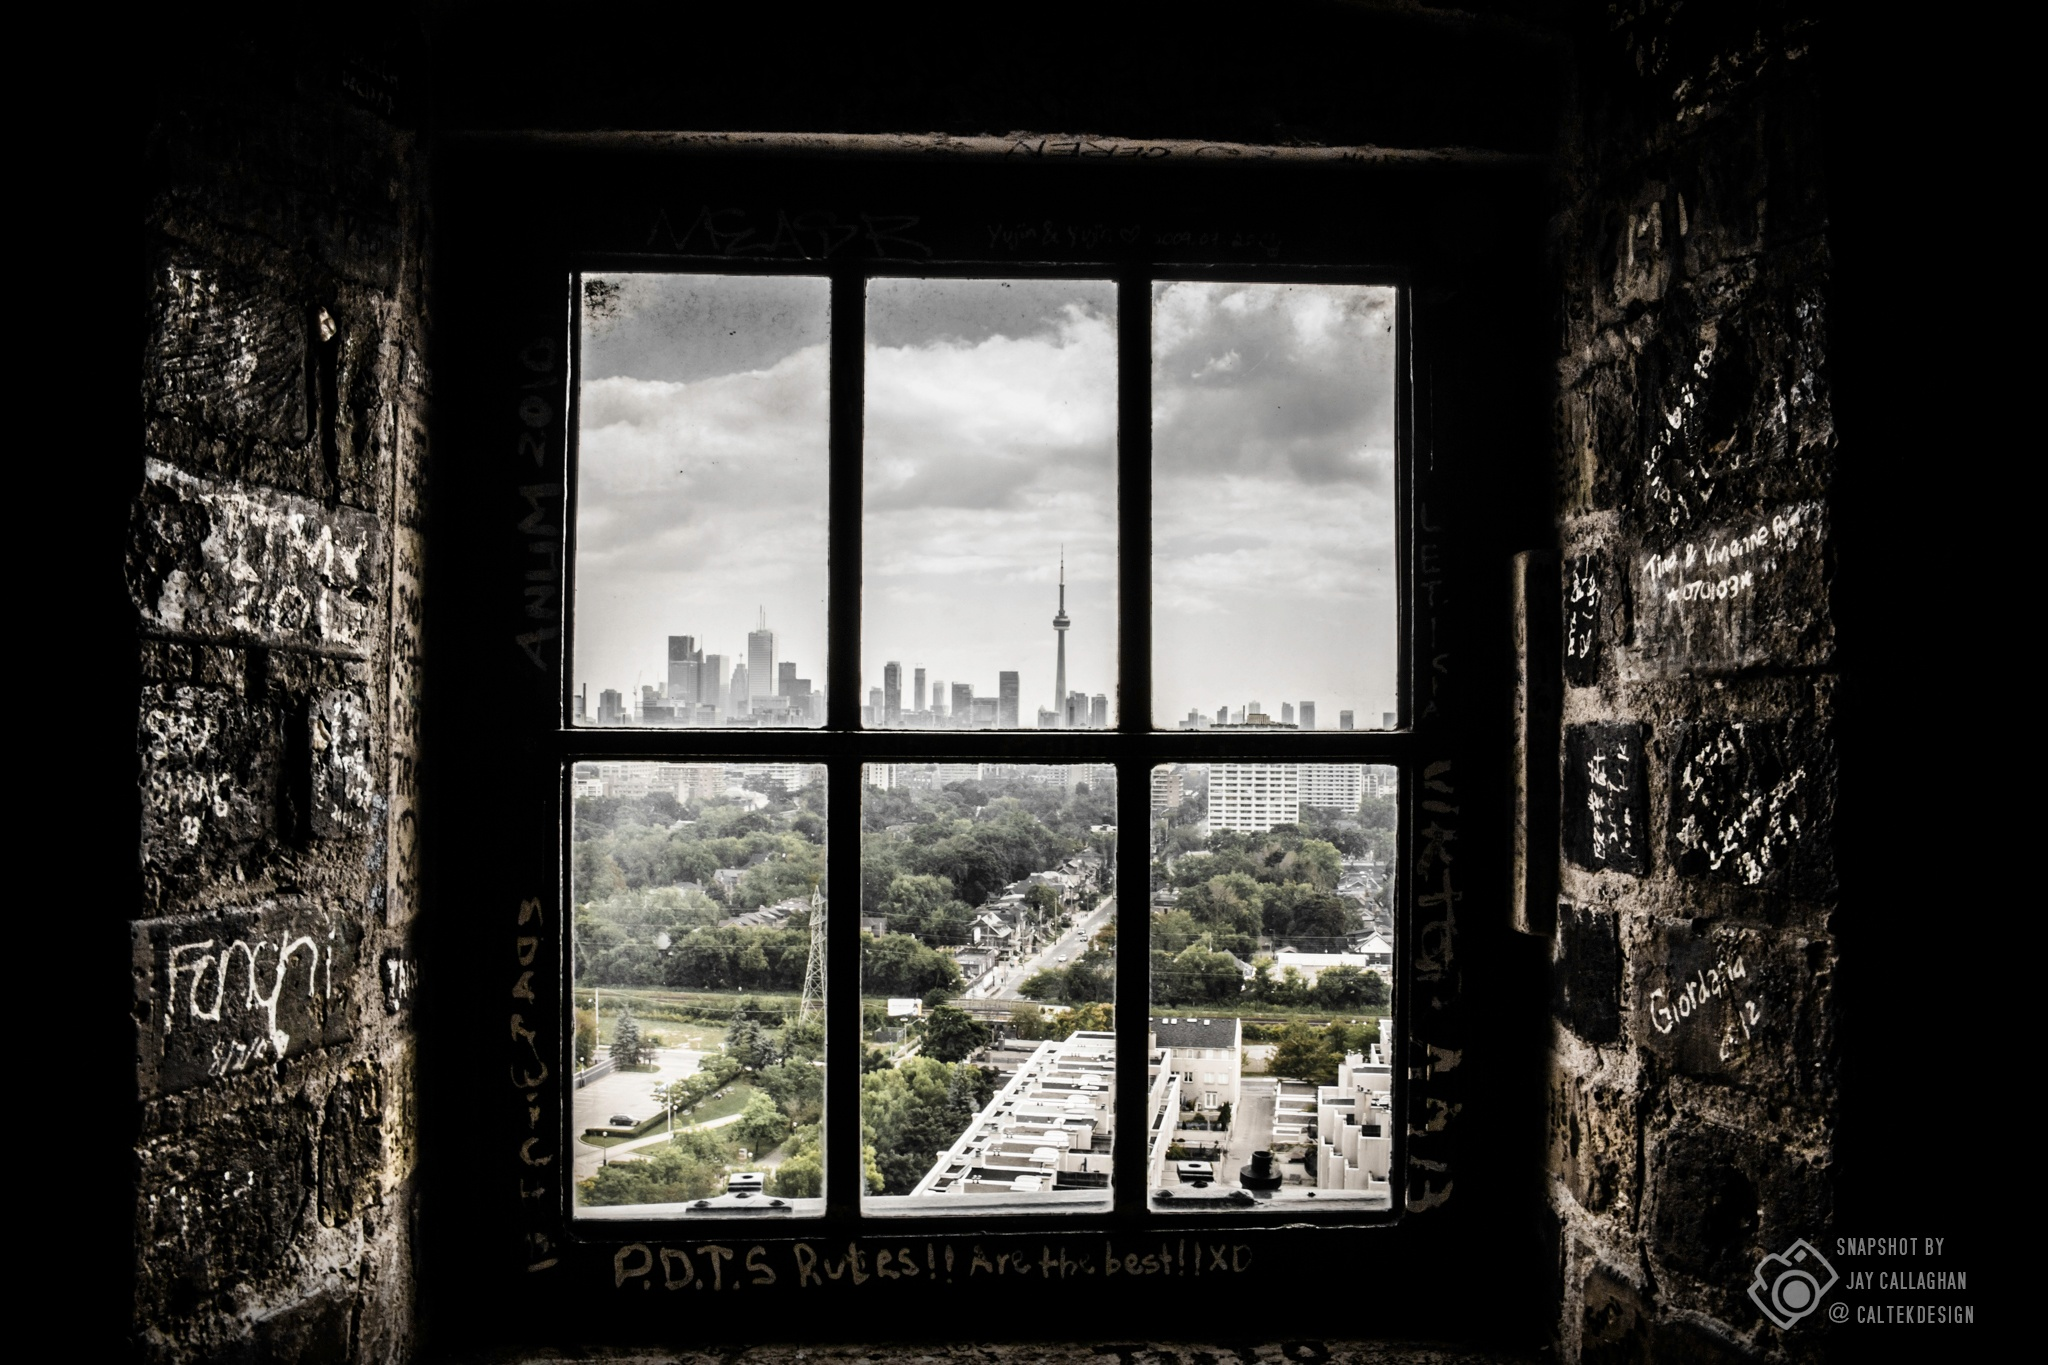 Room with a View by Jay Callaghan